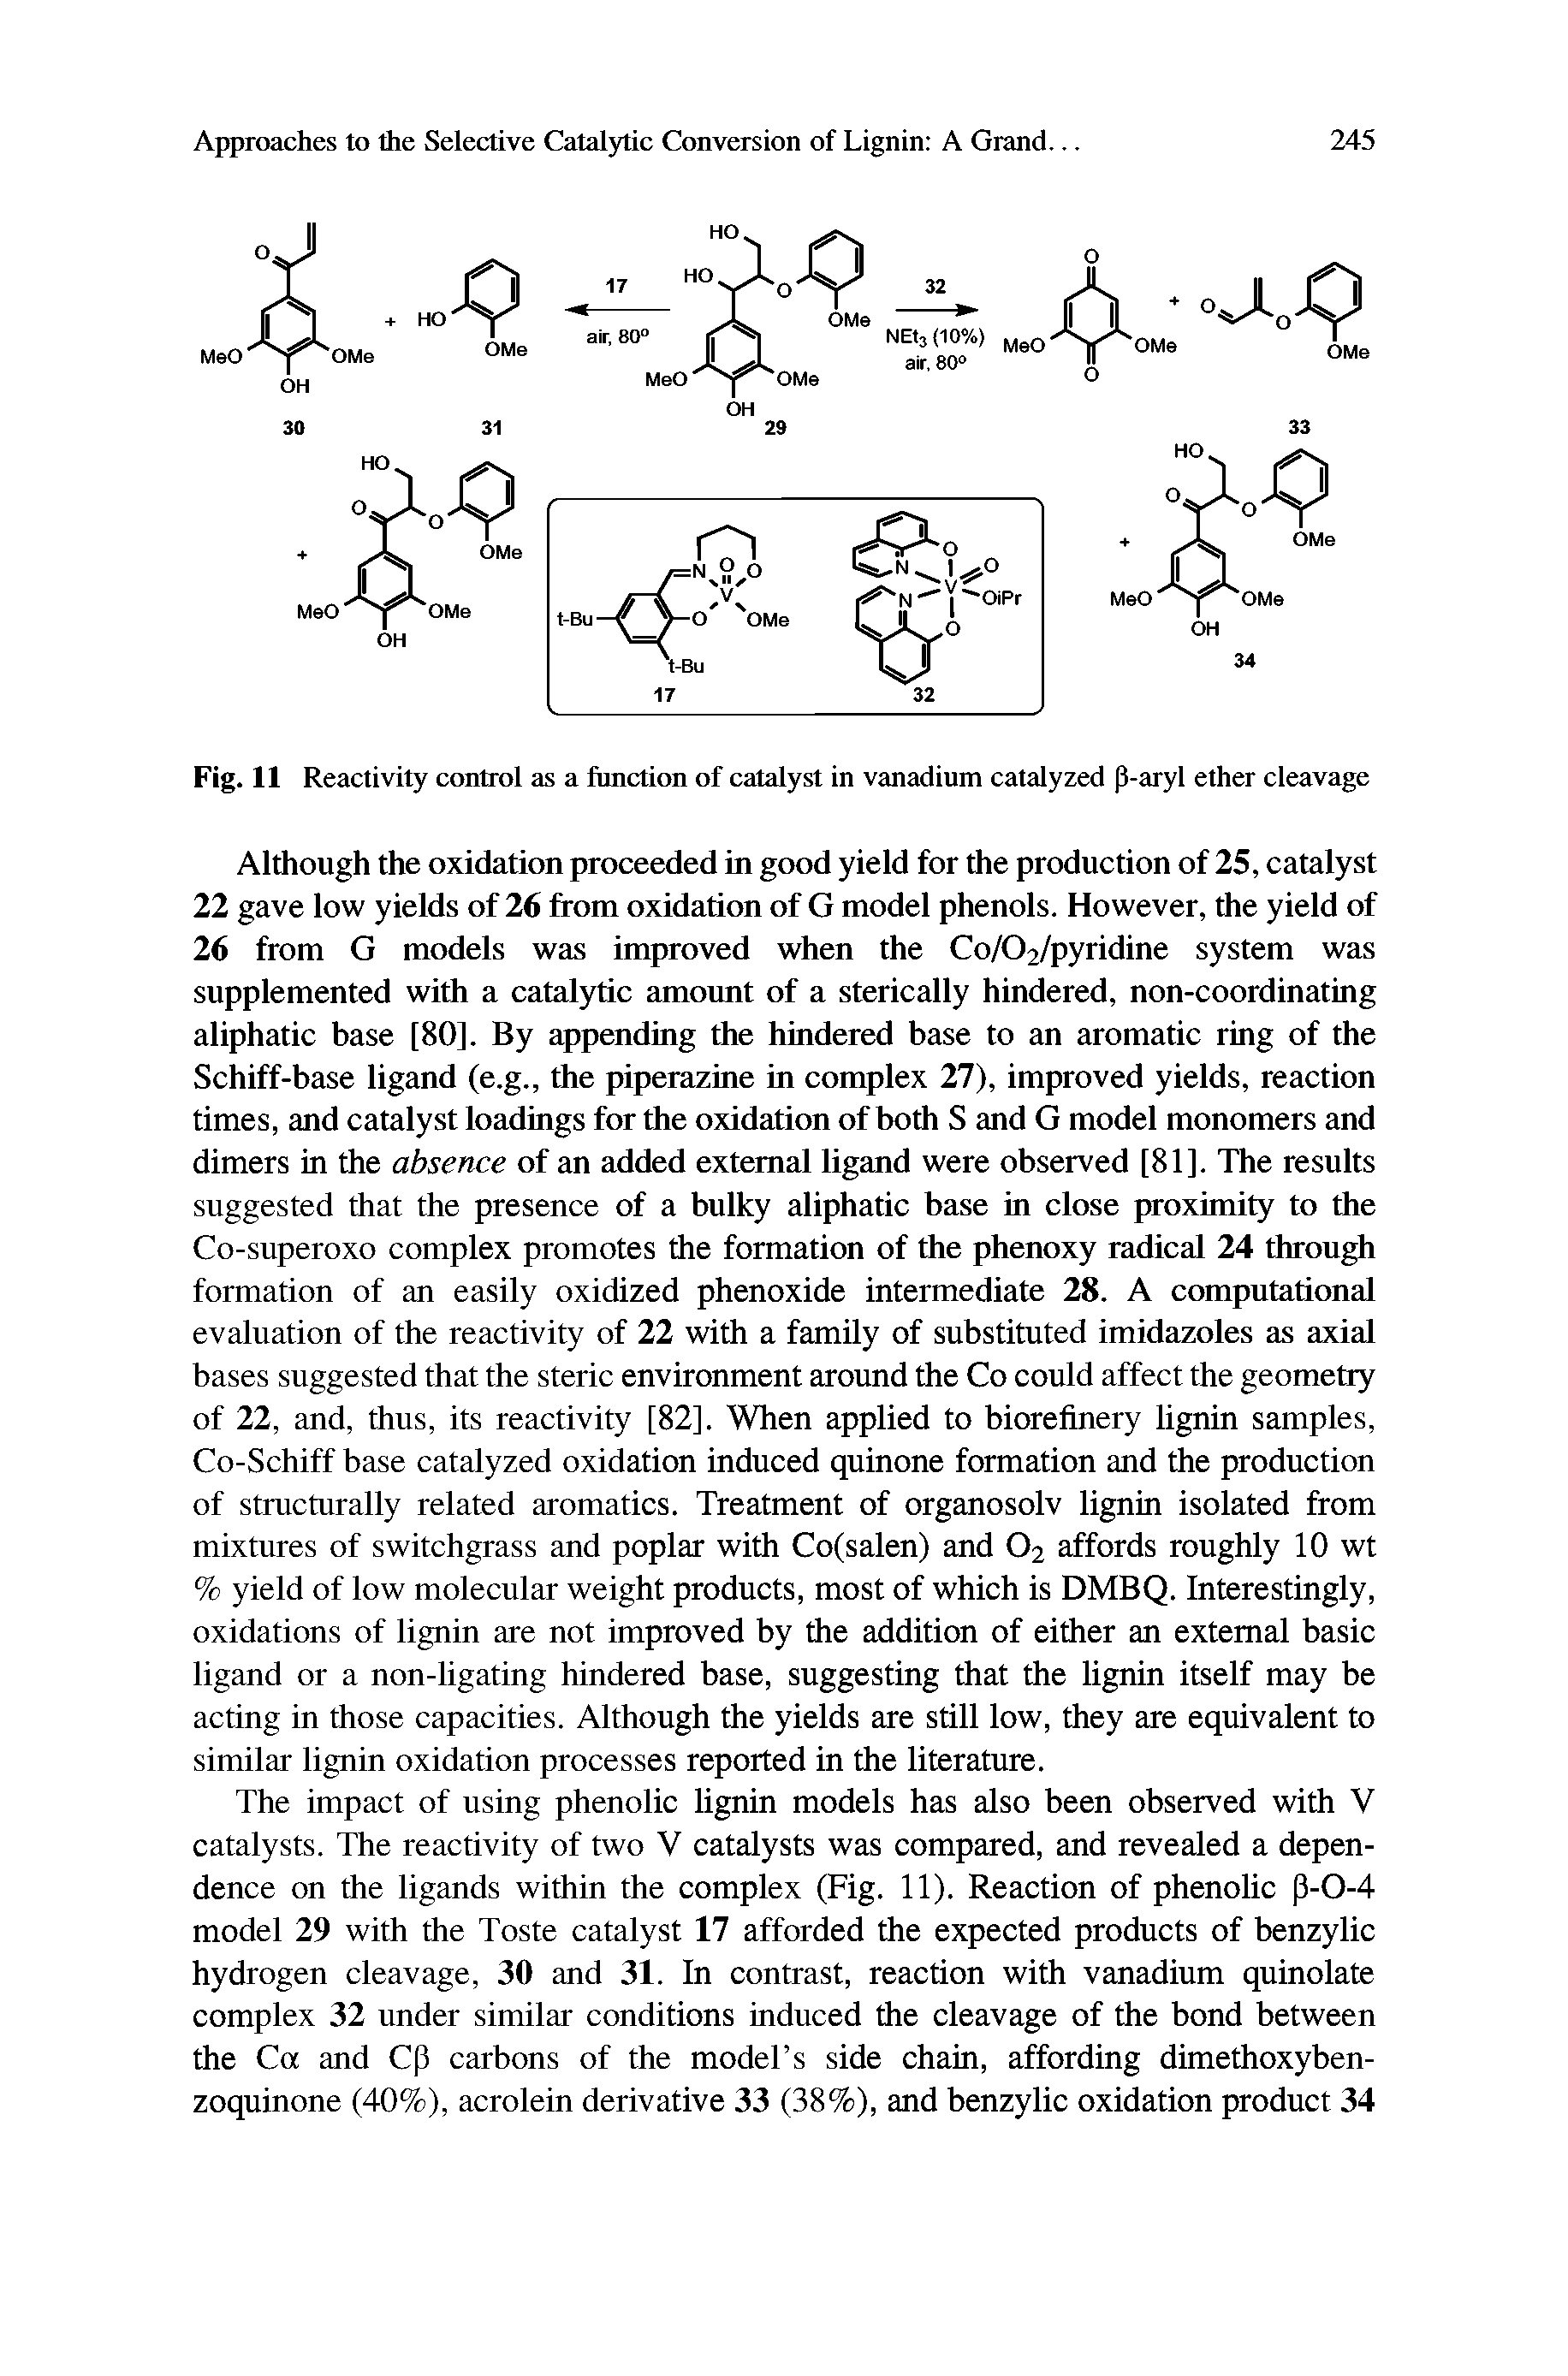 Fig. 11 Reactivity control as a function of catalyst in vanadium catalyzed p-aryl ether cleavage...